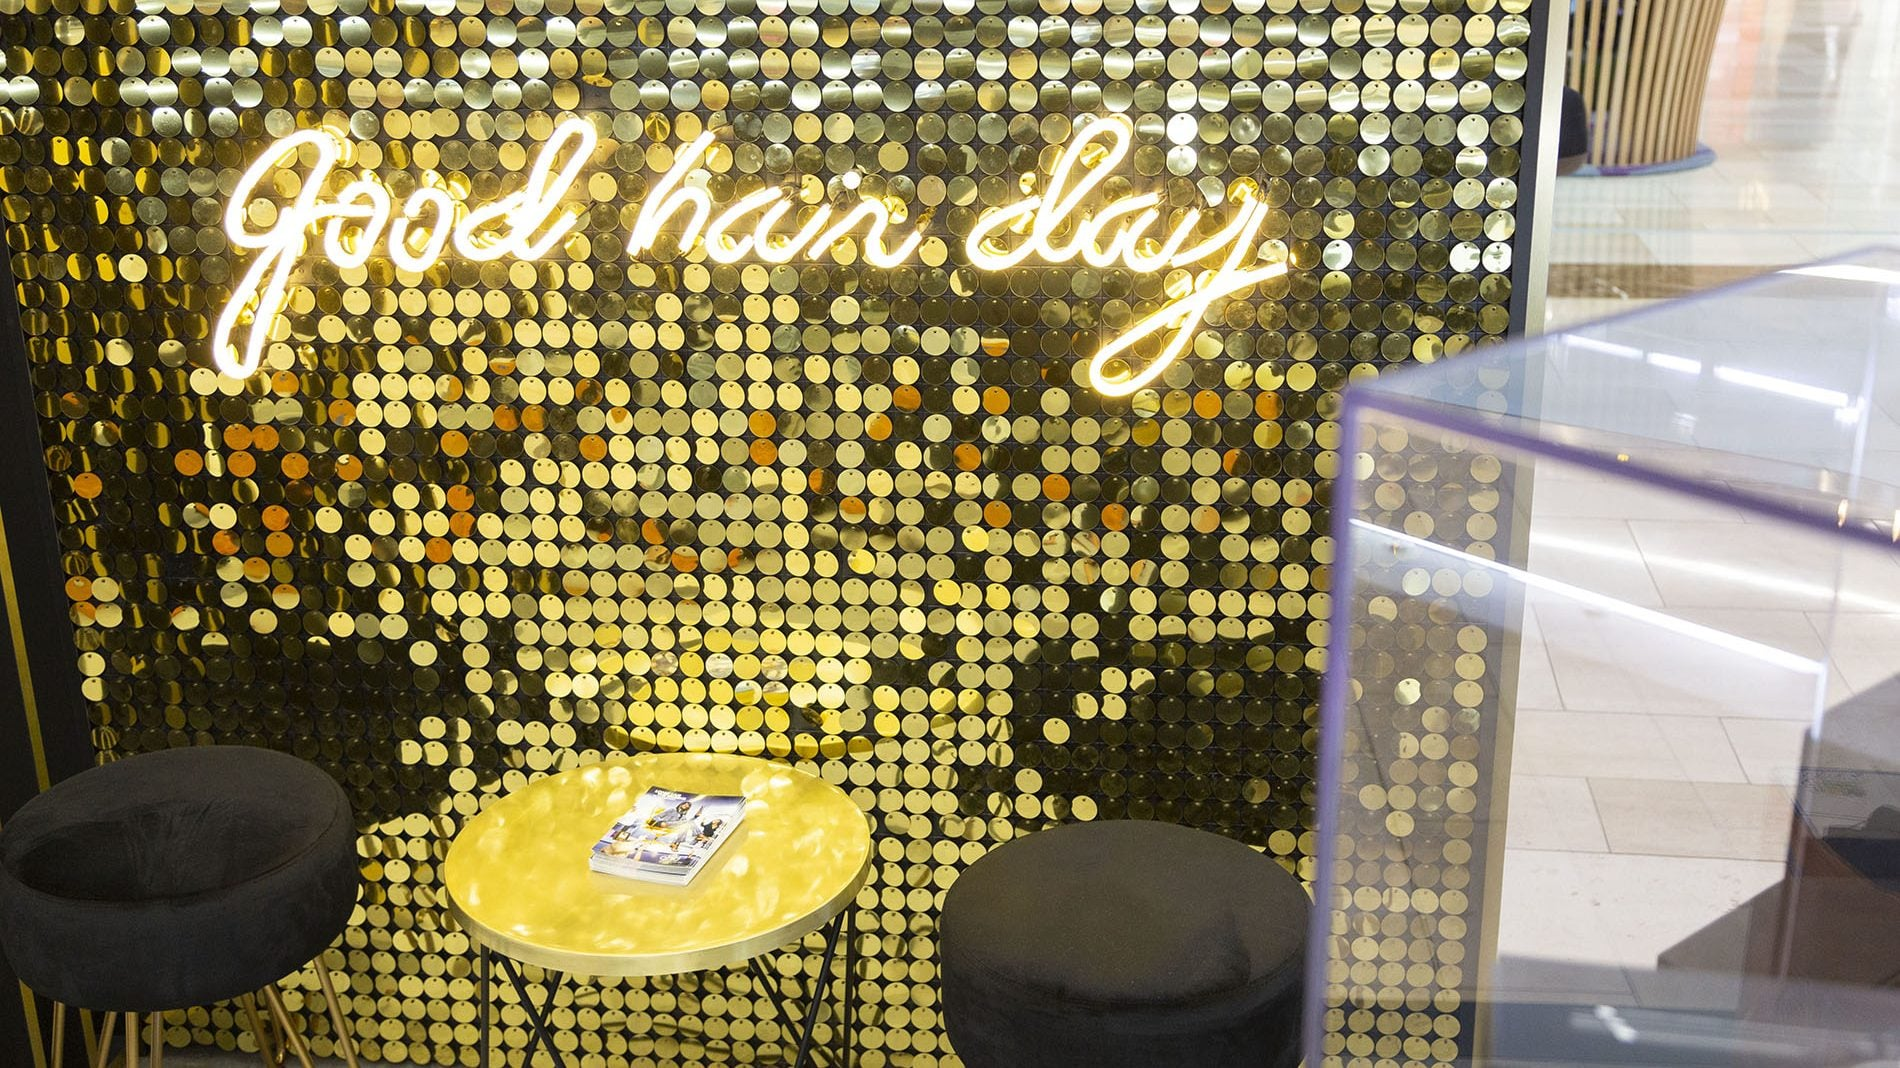 illuminated good hair day sign for GHD at westfield